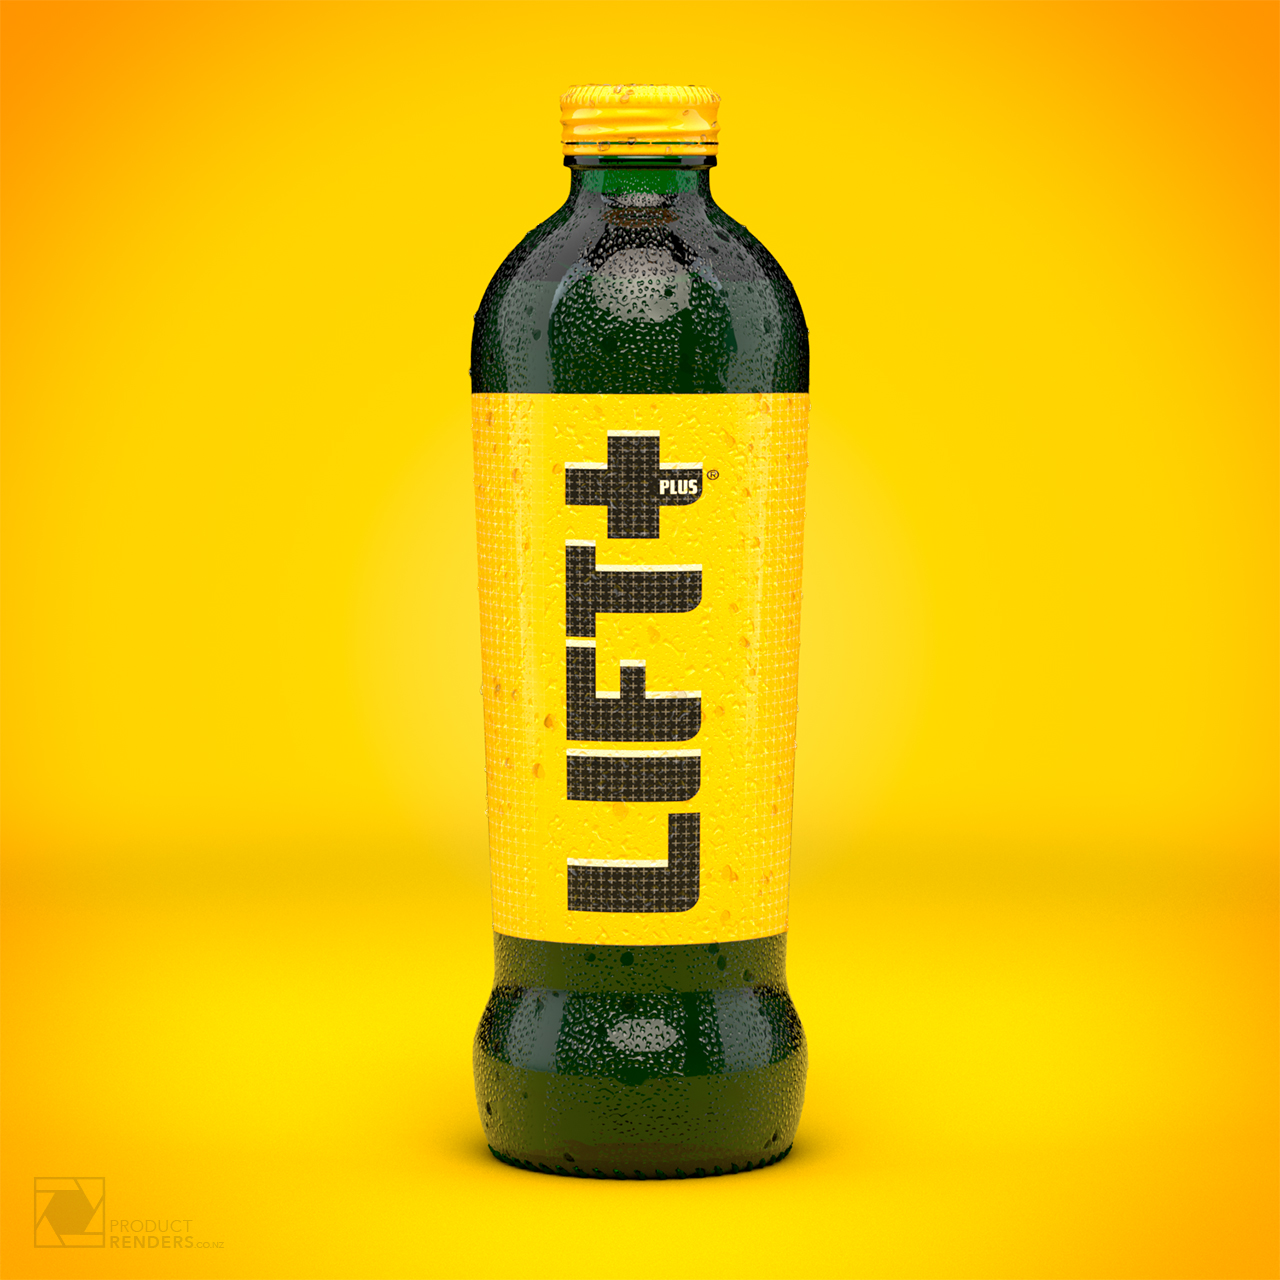 3D render of a Lift+ Plus bottle with water spritz